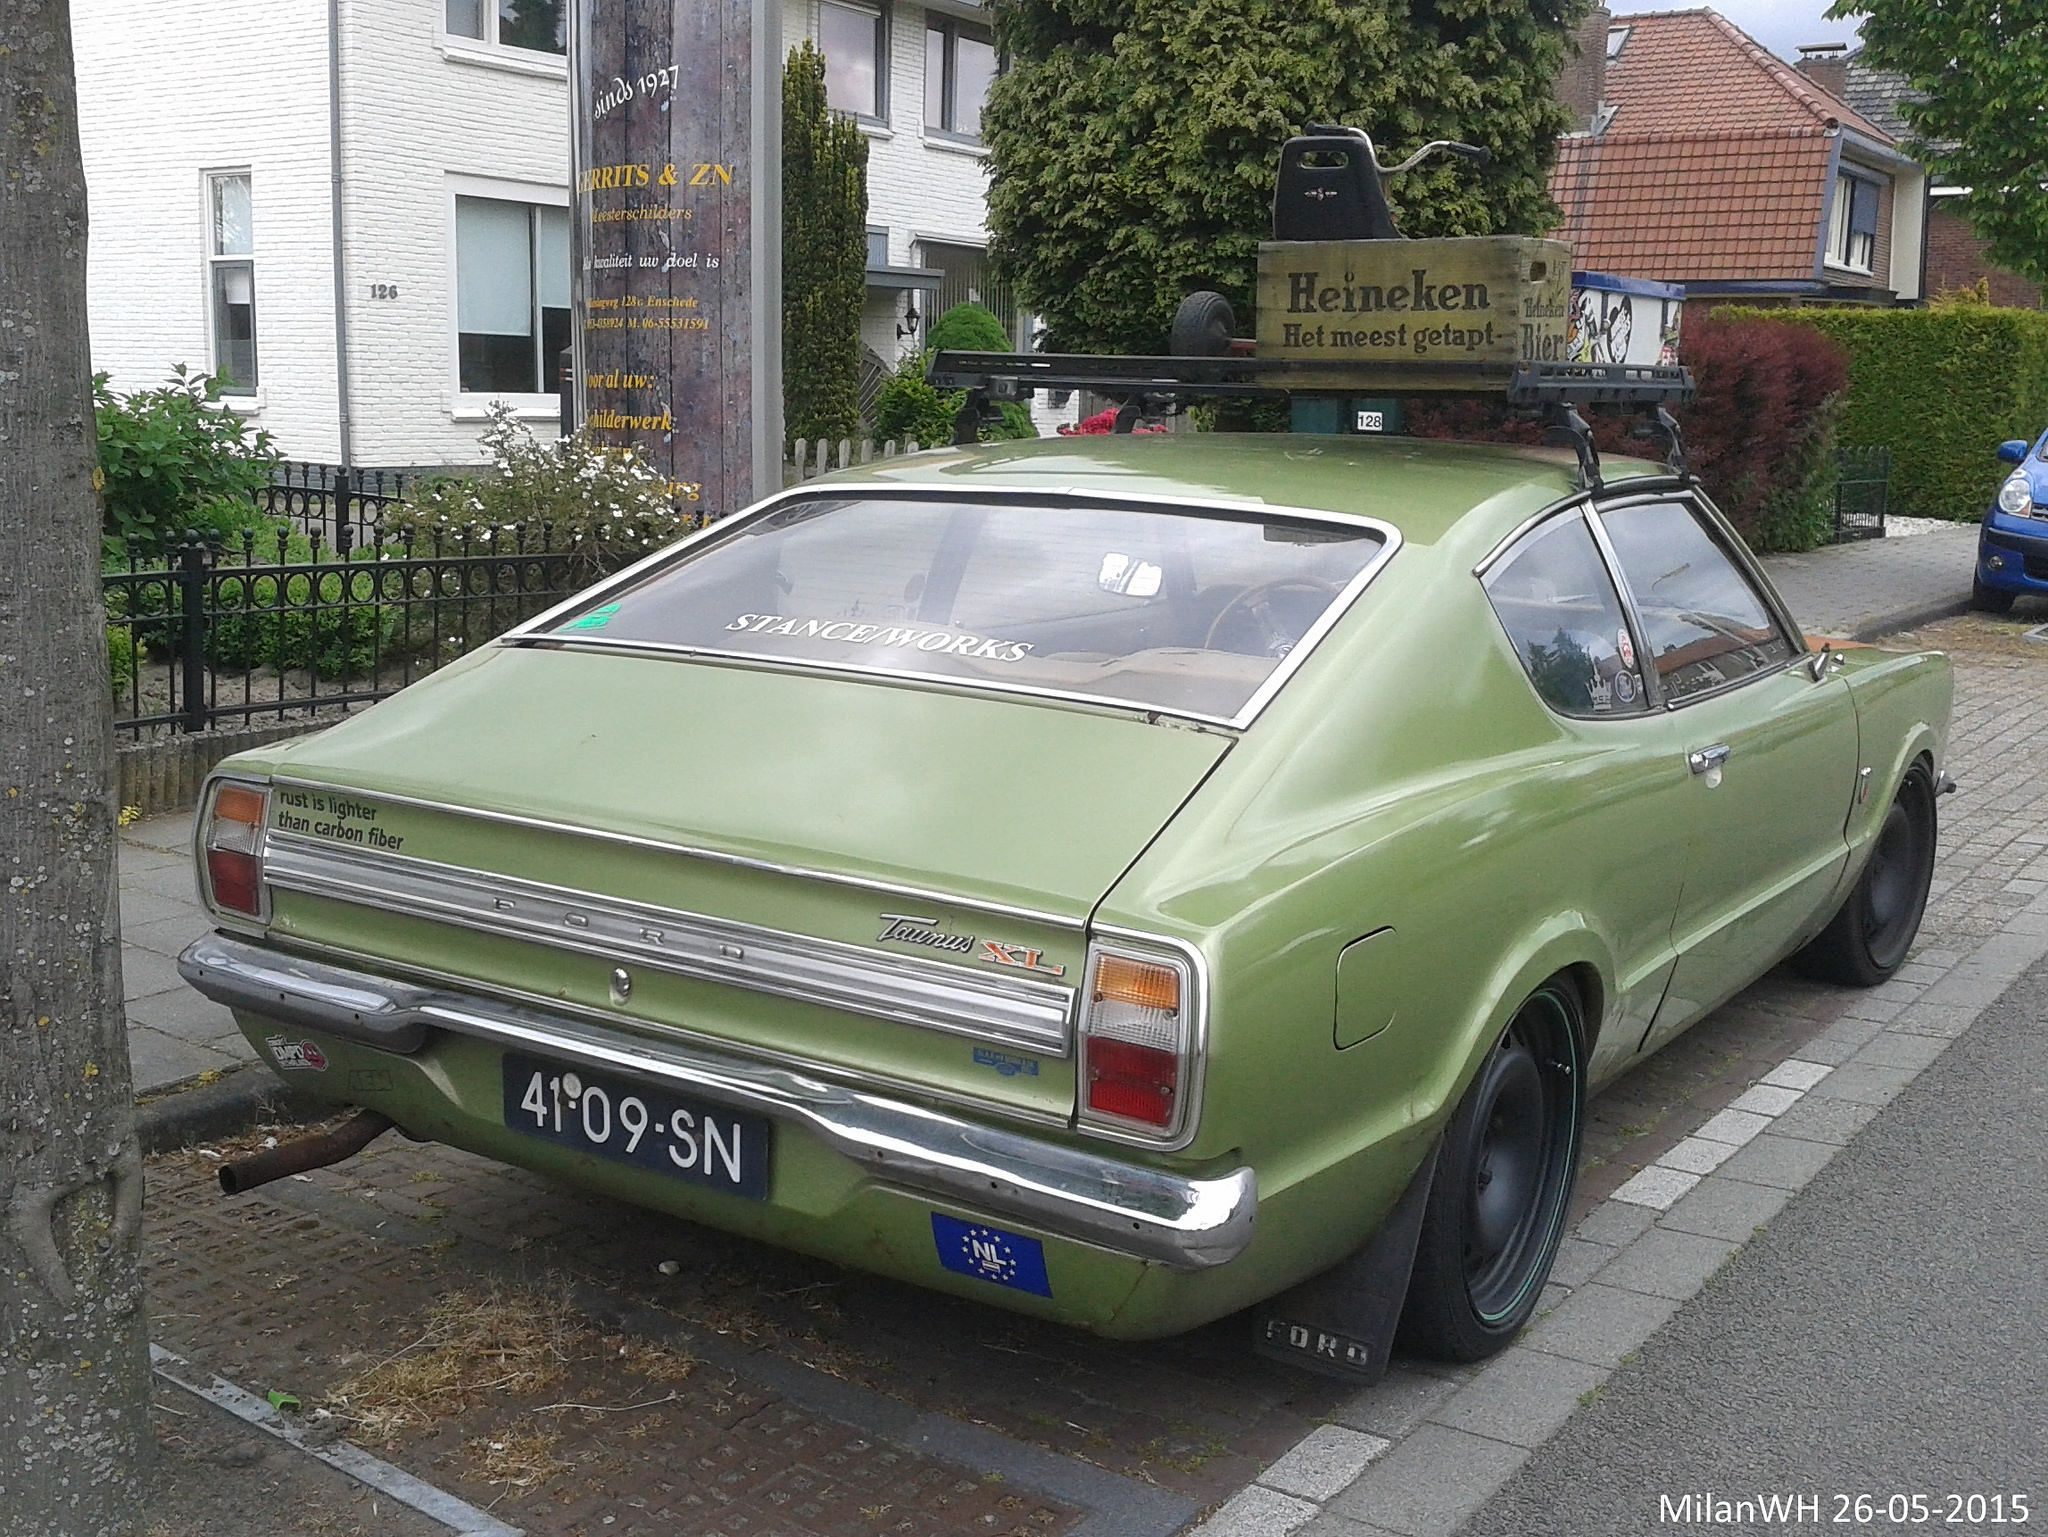 Ford Taunus 1600 Xl Coupe 1971 41 09 Sn Ford Classic Cars